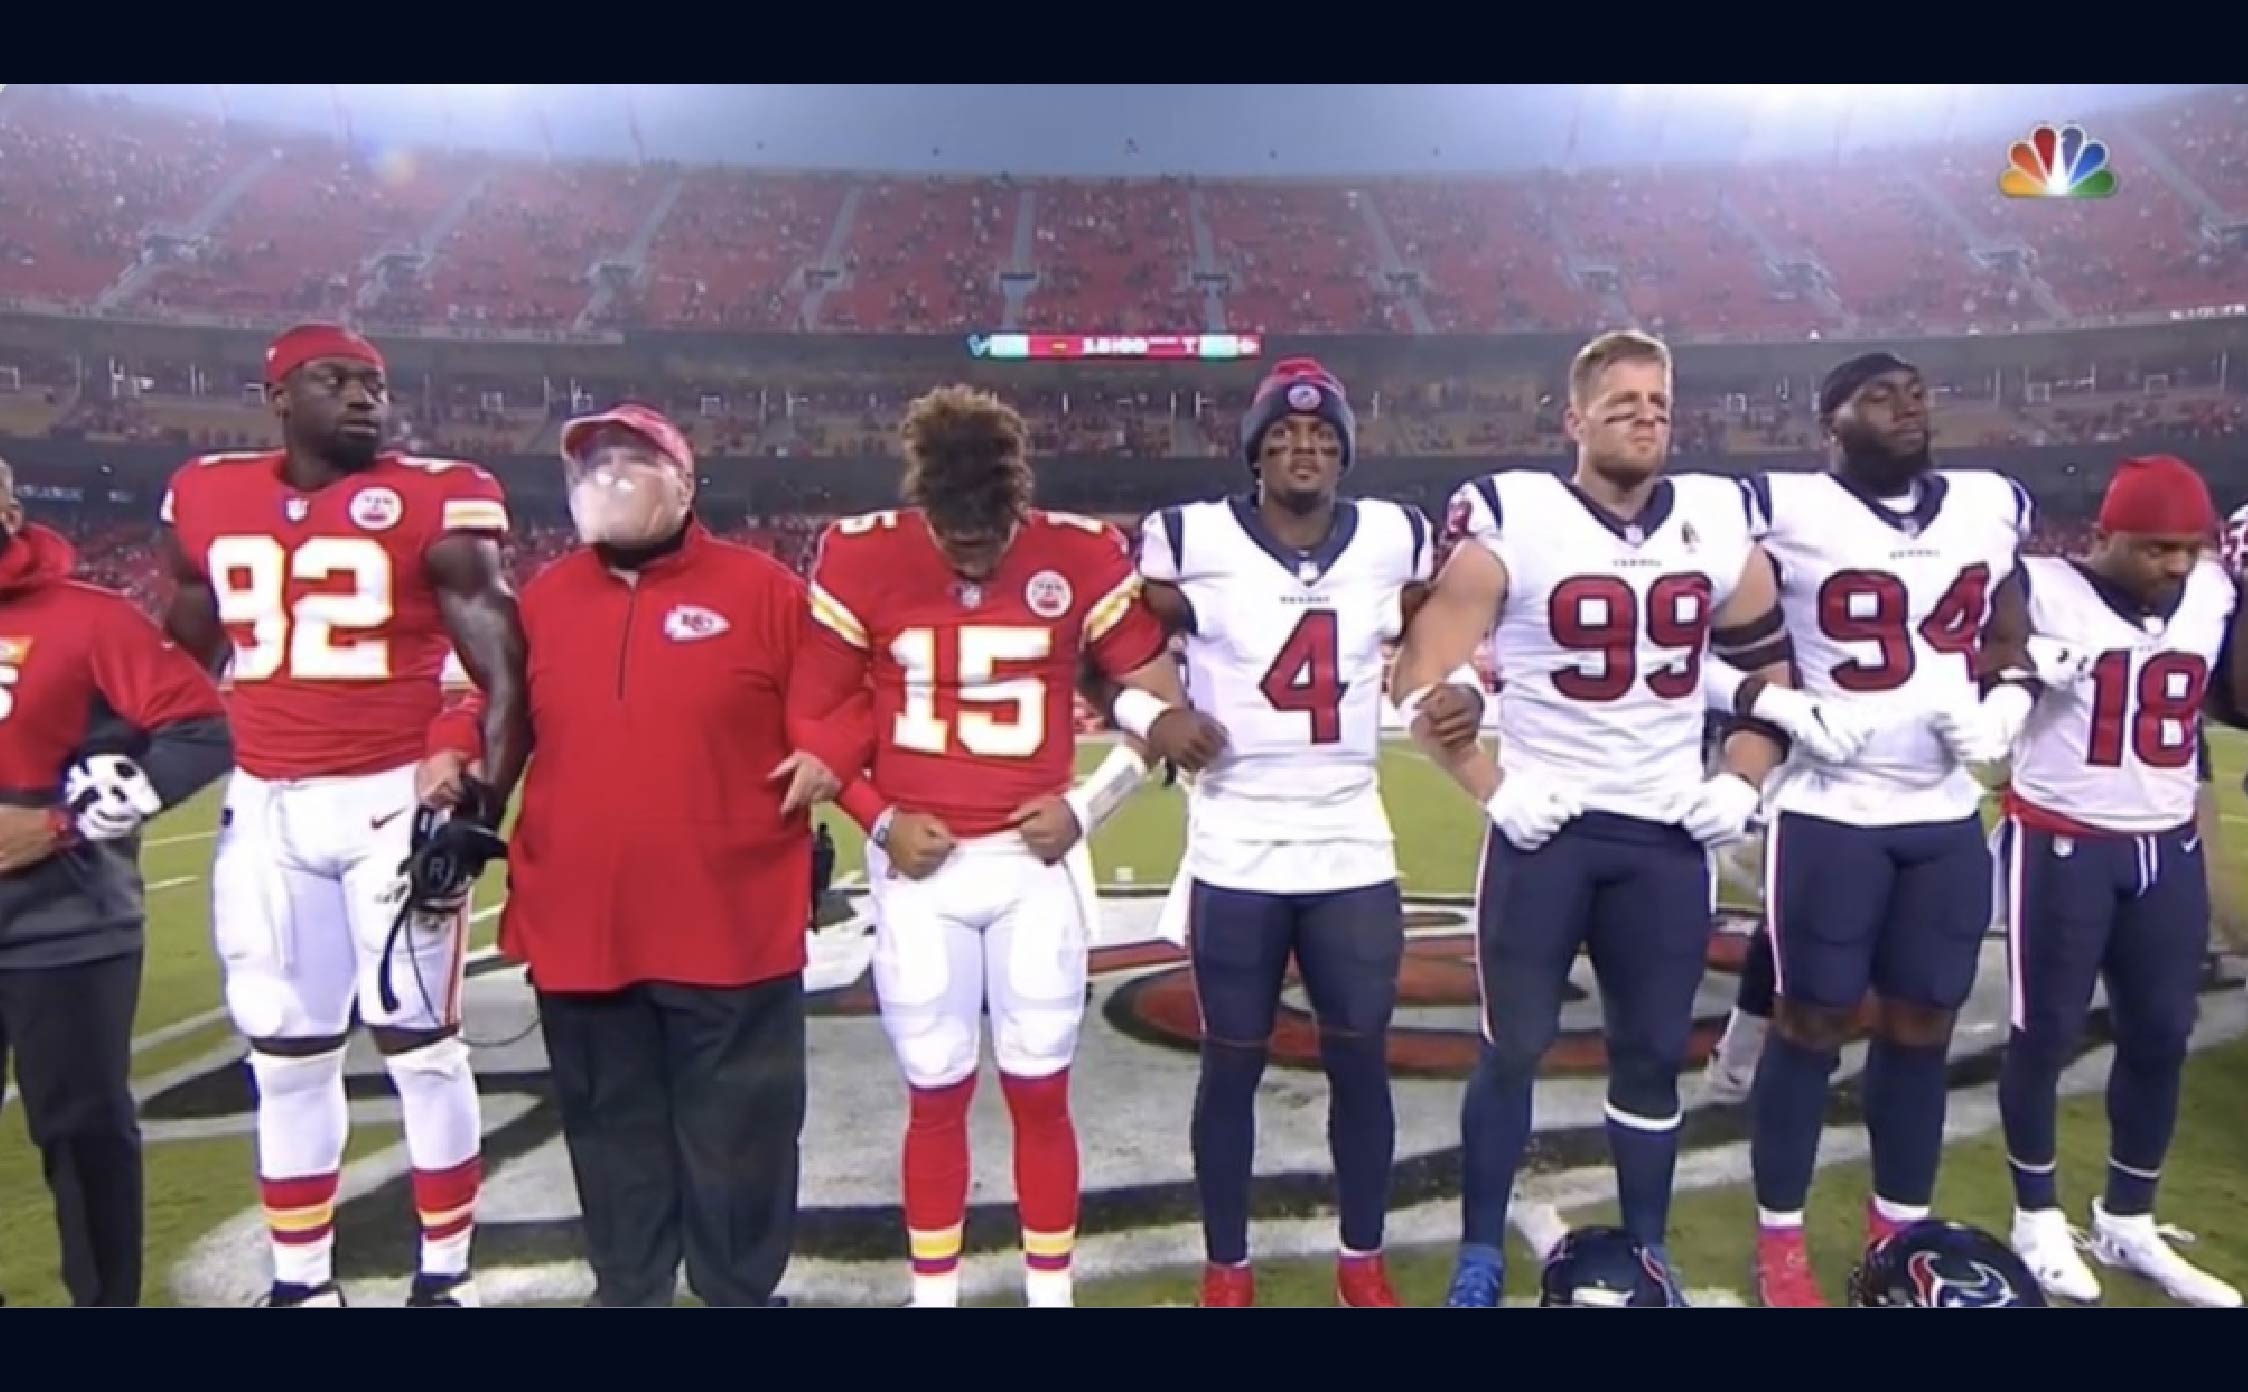 """Liberals Meltdown Over Fans Booing NFL """"Unity Moment"""""""